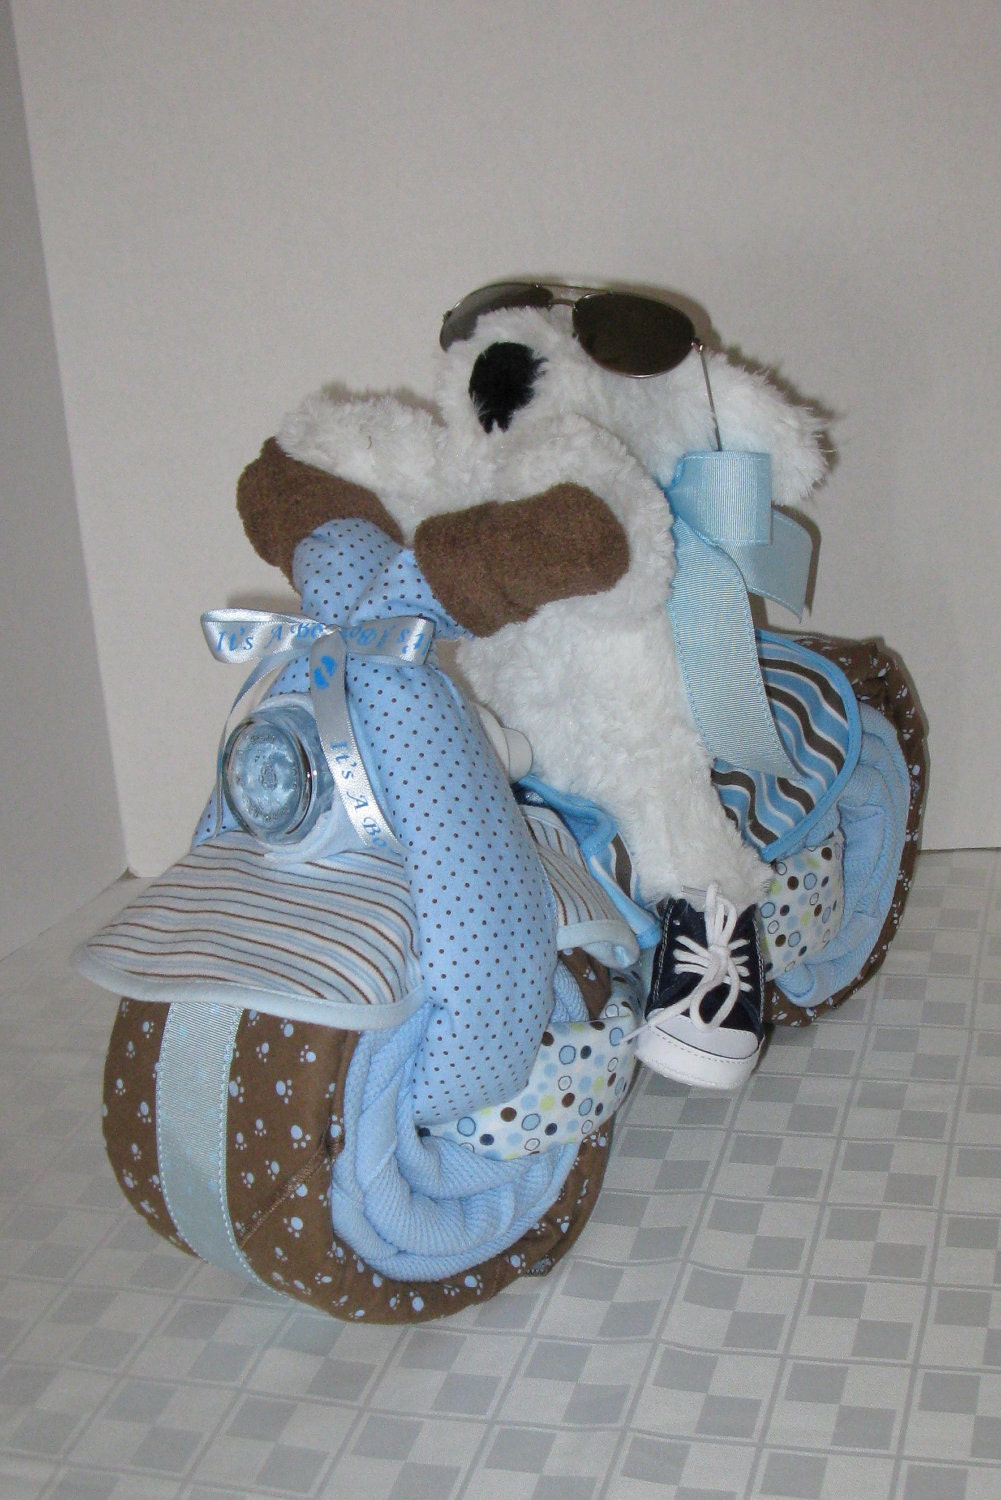 Diaper Cake Centerpiece For Baby Shower : Motorcycle Bike Diaper Cake Baby Shower Gift Centerpiece